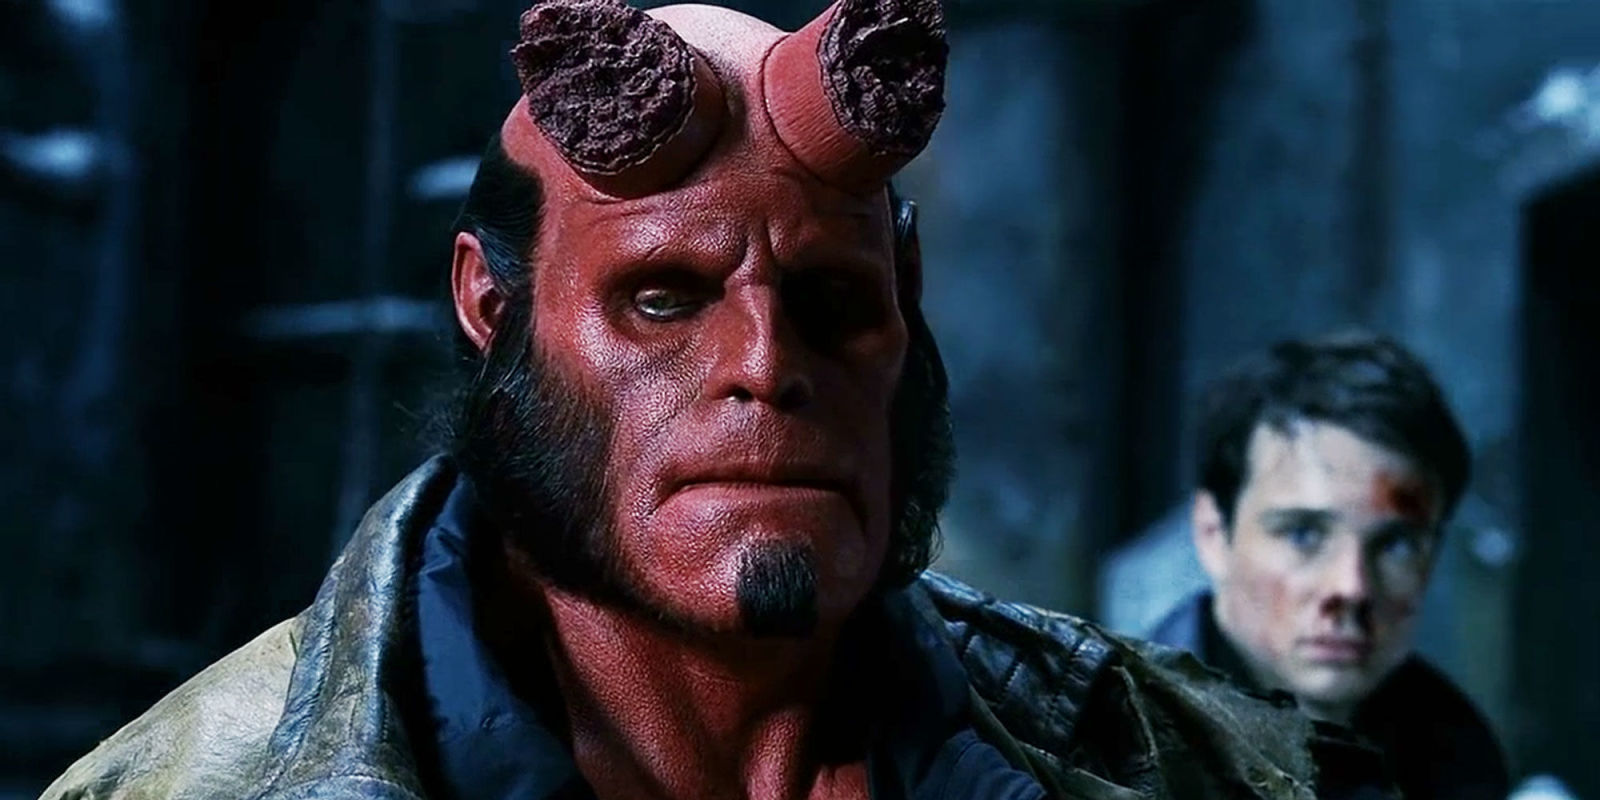 http://digitalspyuk.cdnds.net/17/19/1600x800/landscape-1494320983-hellboy-looking-sad.jpg